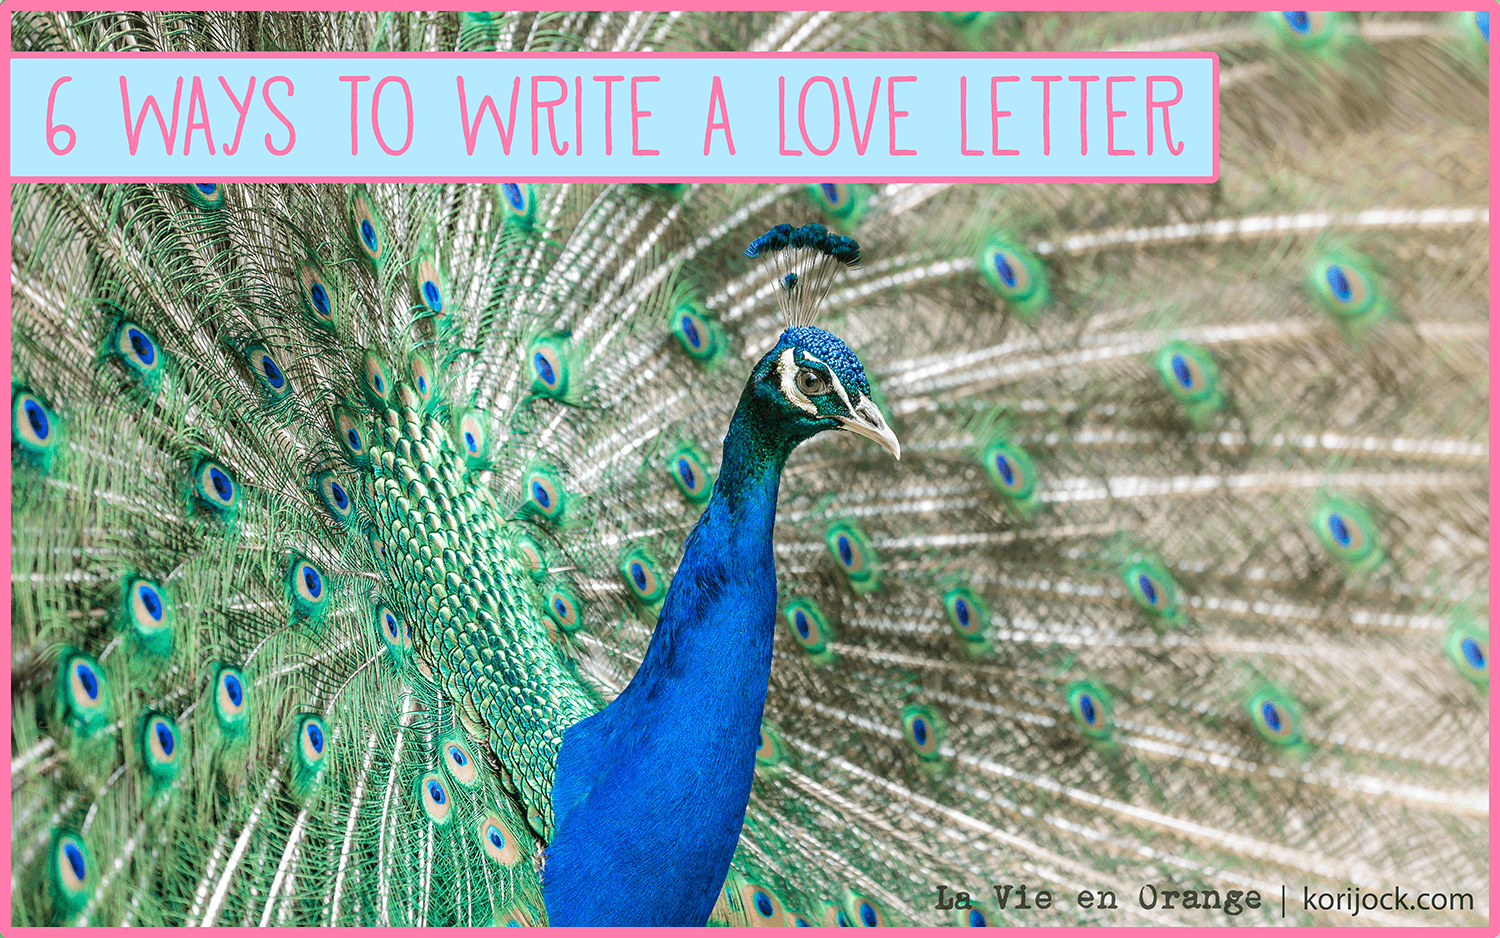 6 ways to write a love letter | La Vie en Orange [a male peacock spreads its green and blue feathers]